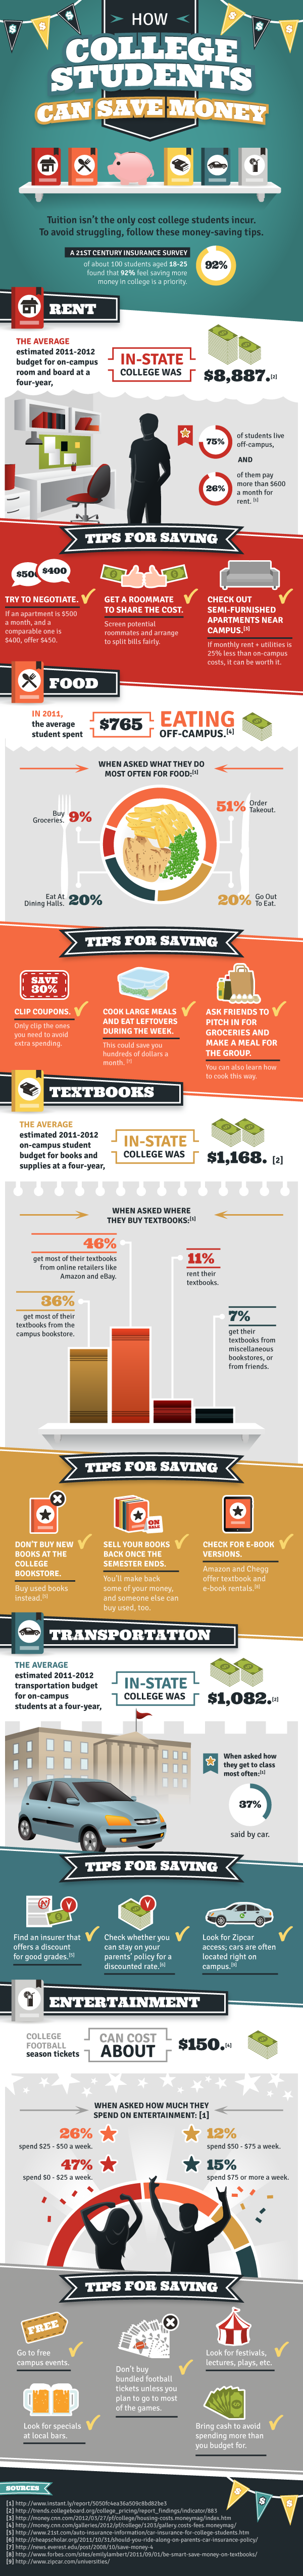 how-college-students-can-save-money_50c0e57313db9